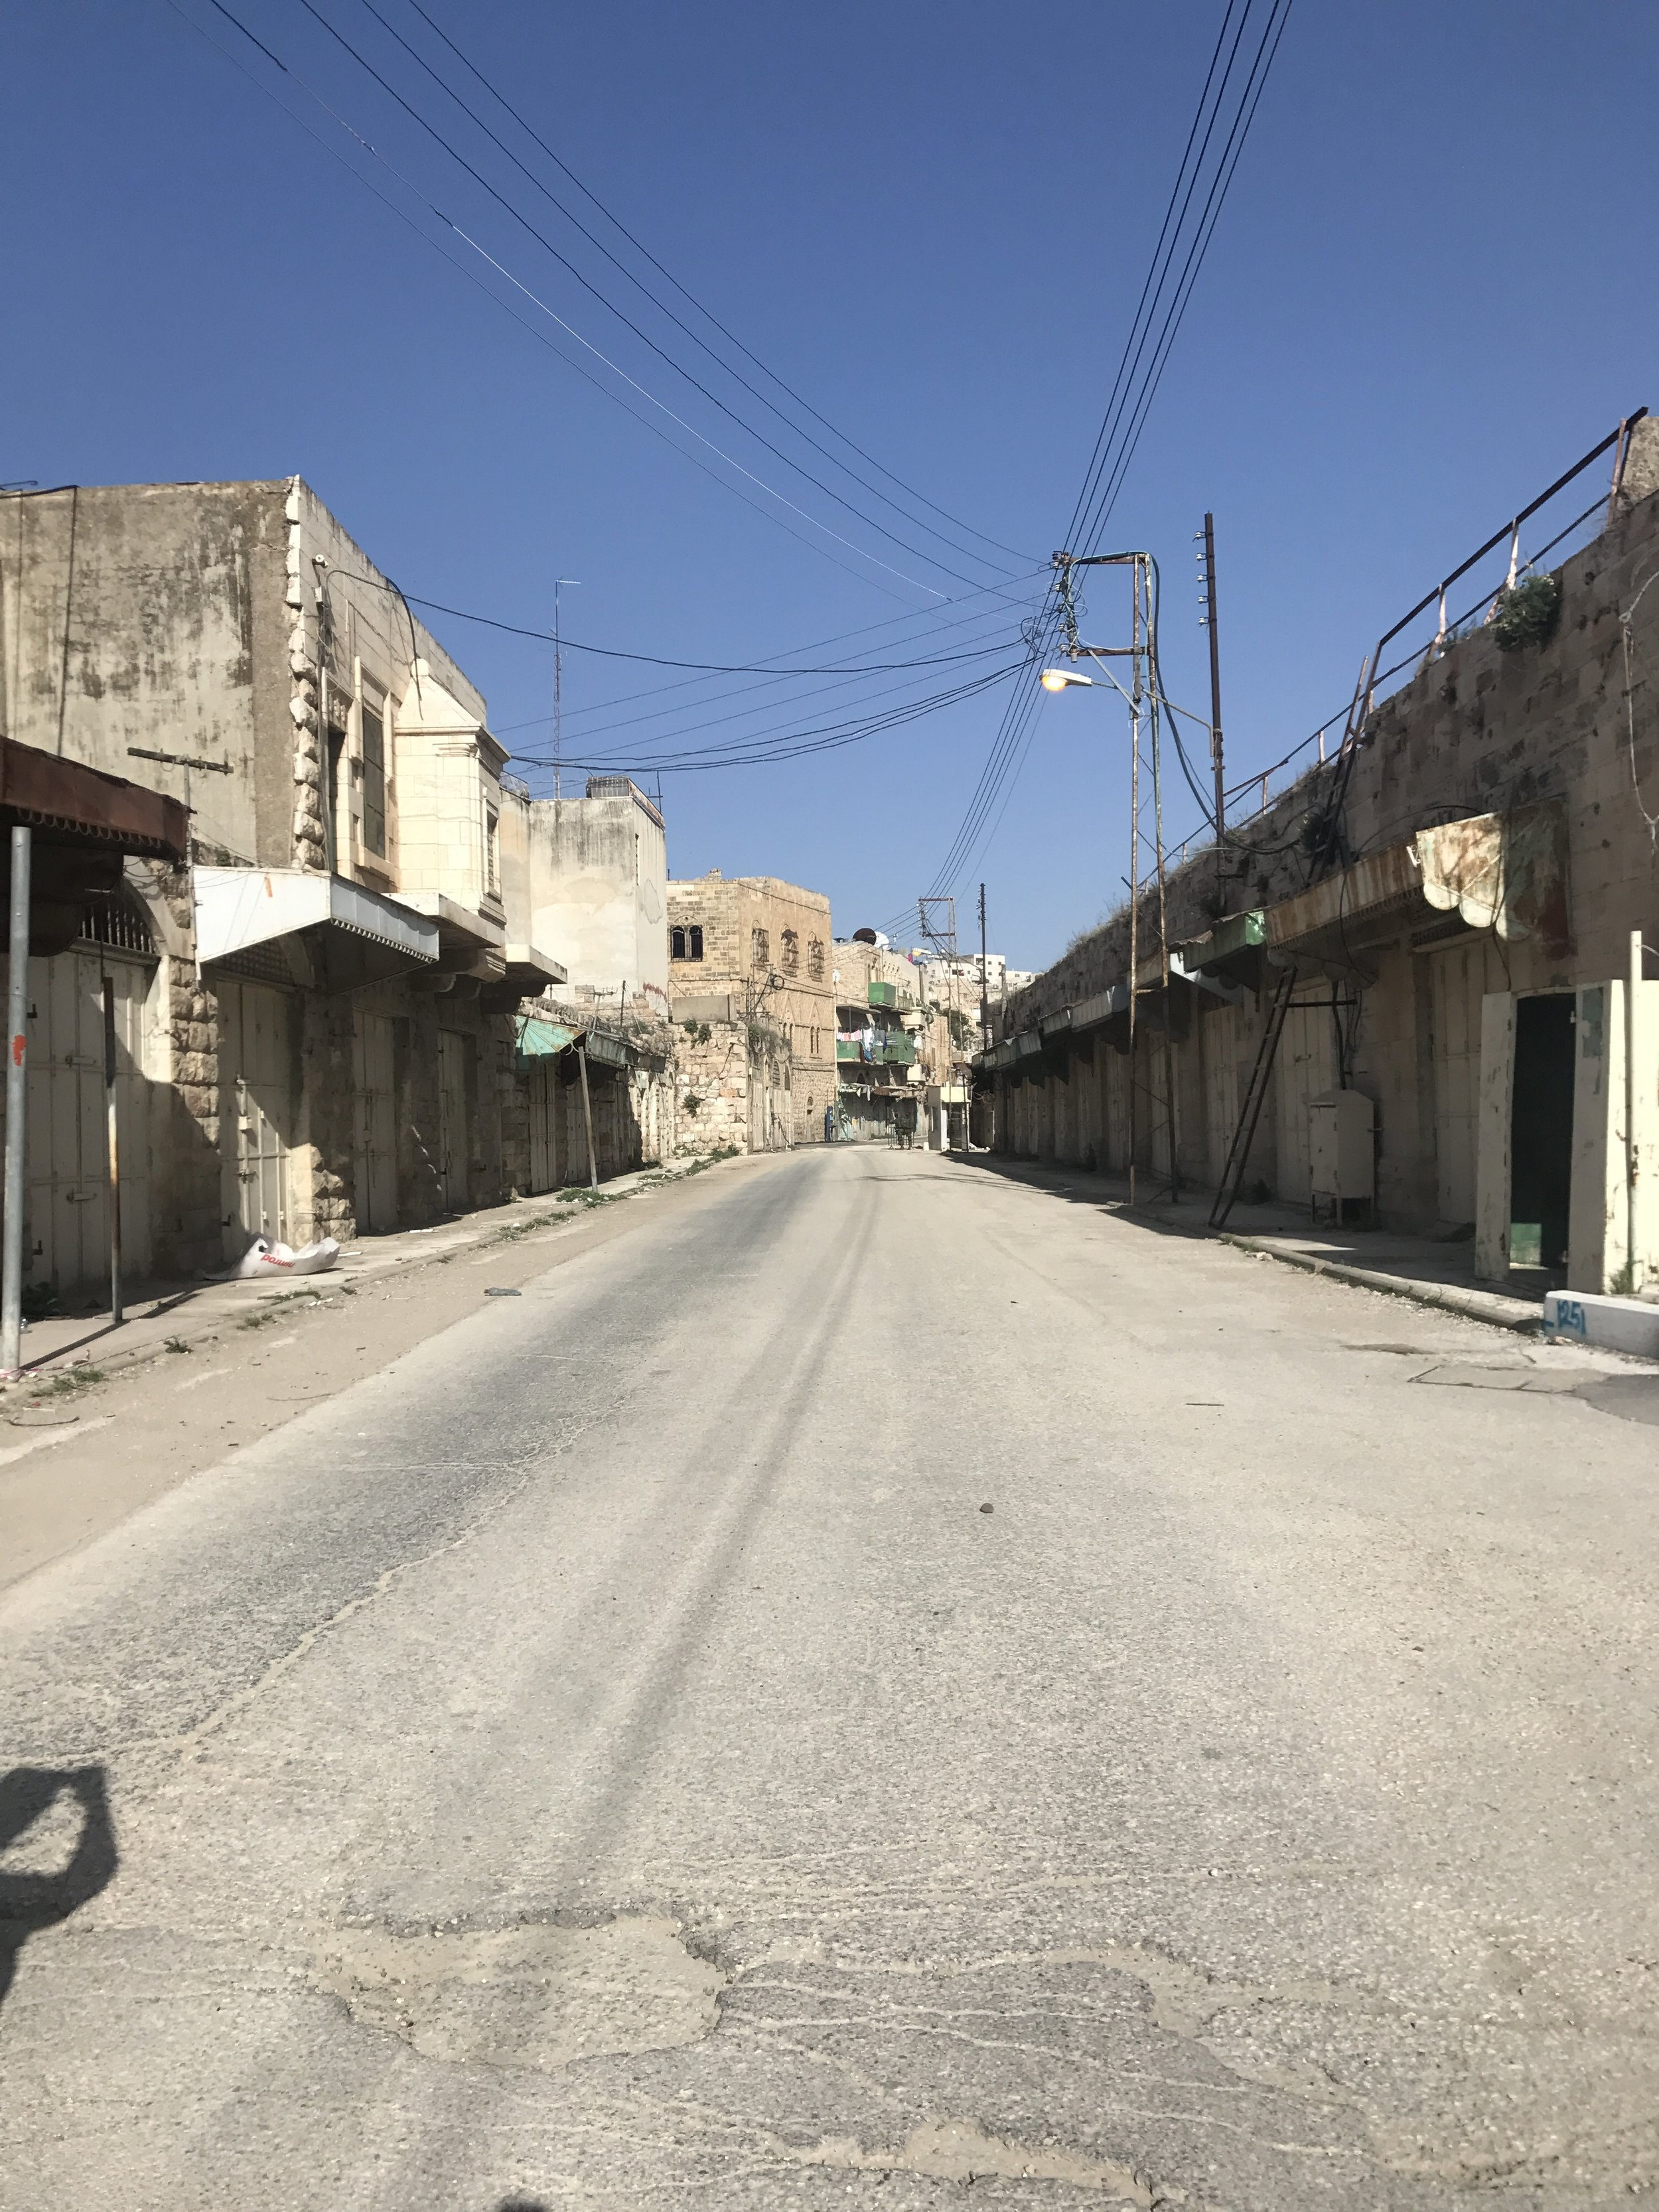 An occupied street in Hebron, Palestine. During my spring break, I had the amazing opportunity to visit Hebron, as well as Ramallah and Bethlehem. My roommate and I stayed in Jerusalem, and had guided tours of the Palestinian cities. Visiting Hebron was especially heartbreaking. It was virtually a ghost town and contains over a hundred checkpoints guarded by the Israeli military. The markets that are bustling in Jerusalem are reflected in the similar markets of Hebron that are virtually empty. The limits of Palestinian mobility were especially present here. Our Palestinian tour guide was unable to go certain areas and walk down certain roads, seemingly at random, while the American and European tourist were able to explore the city as they pleased. I pray for justice in Palestine. Photo credit: Samantha Manno, 2018